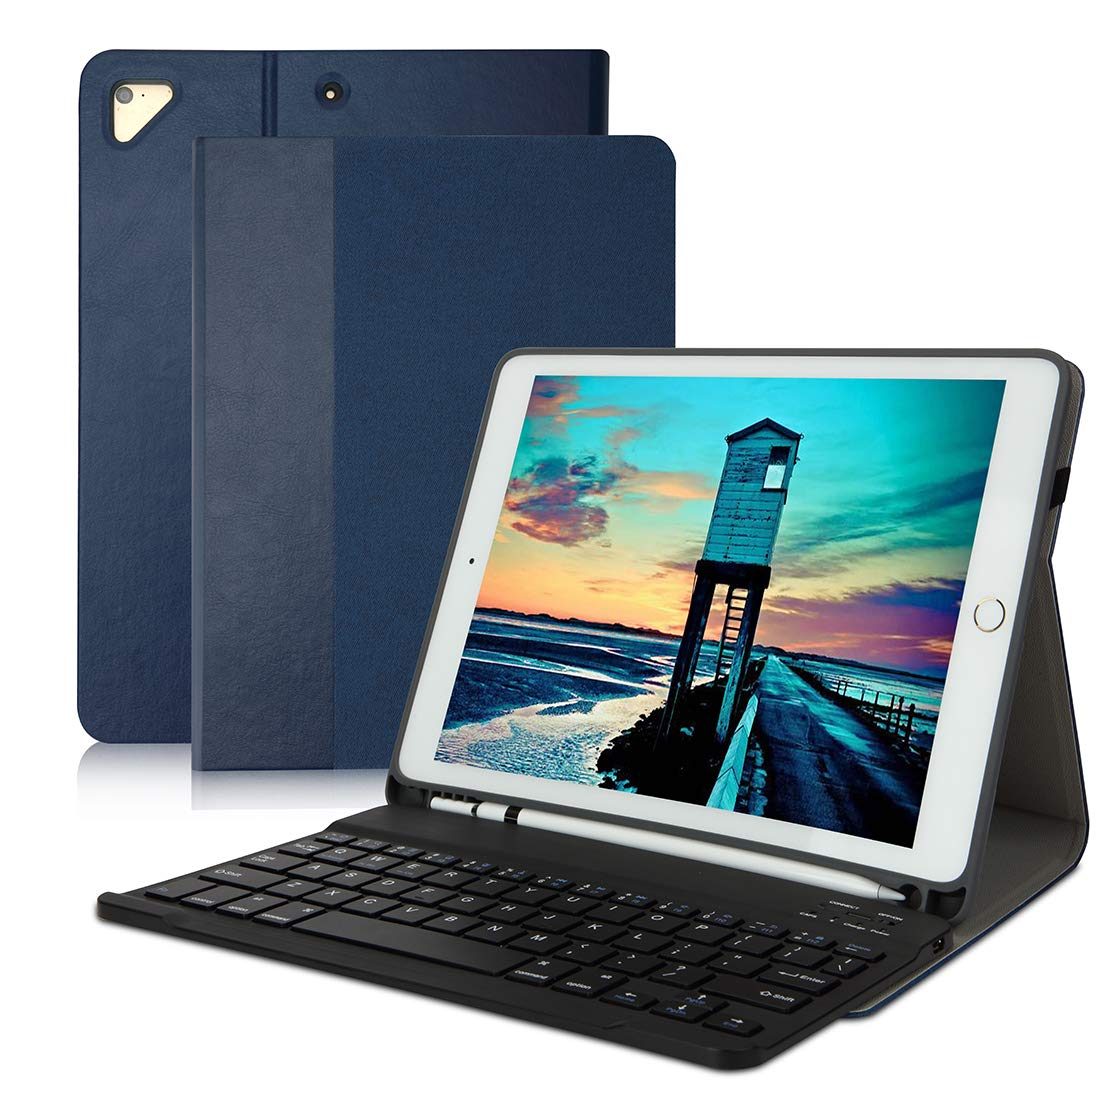 5th Gen Air 2 iPad 9.7 Keyboard Case Compatible iPad 9.7 2017 Pro 9.7 6th Gen Air-Detachable Backlit Wireless Keyboard Stand Case//Heavy Duty Shockproof Rugged Case with Stylus Holder-Black 2018